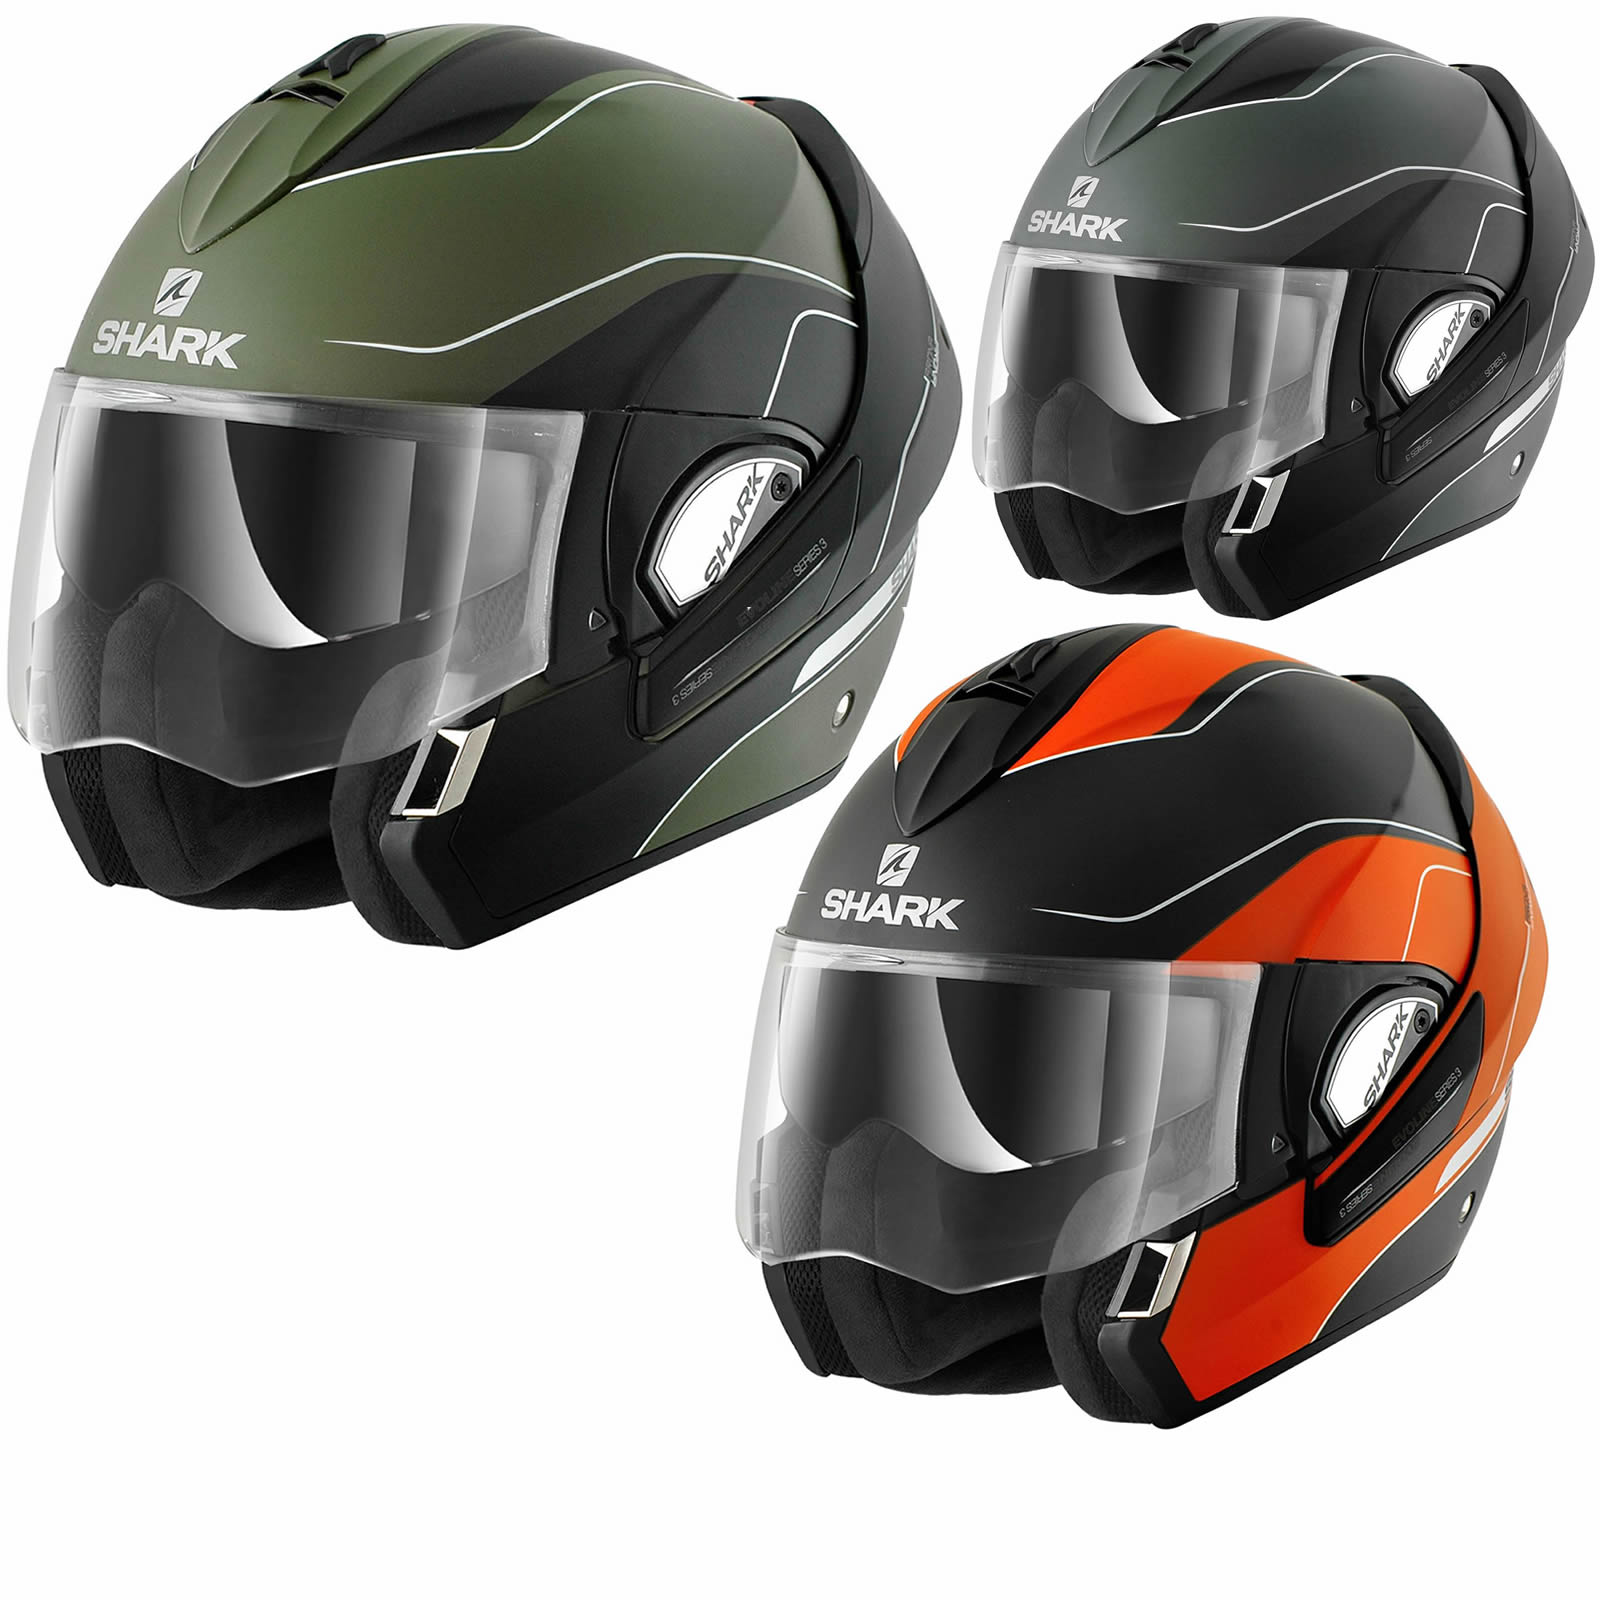 shark evoline series 3 moov up mat motorcycle helmet flip front helmets. Black Bedroom Furniture Sets. Home Design Ideas